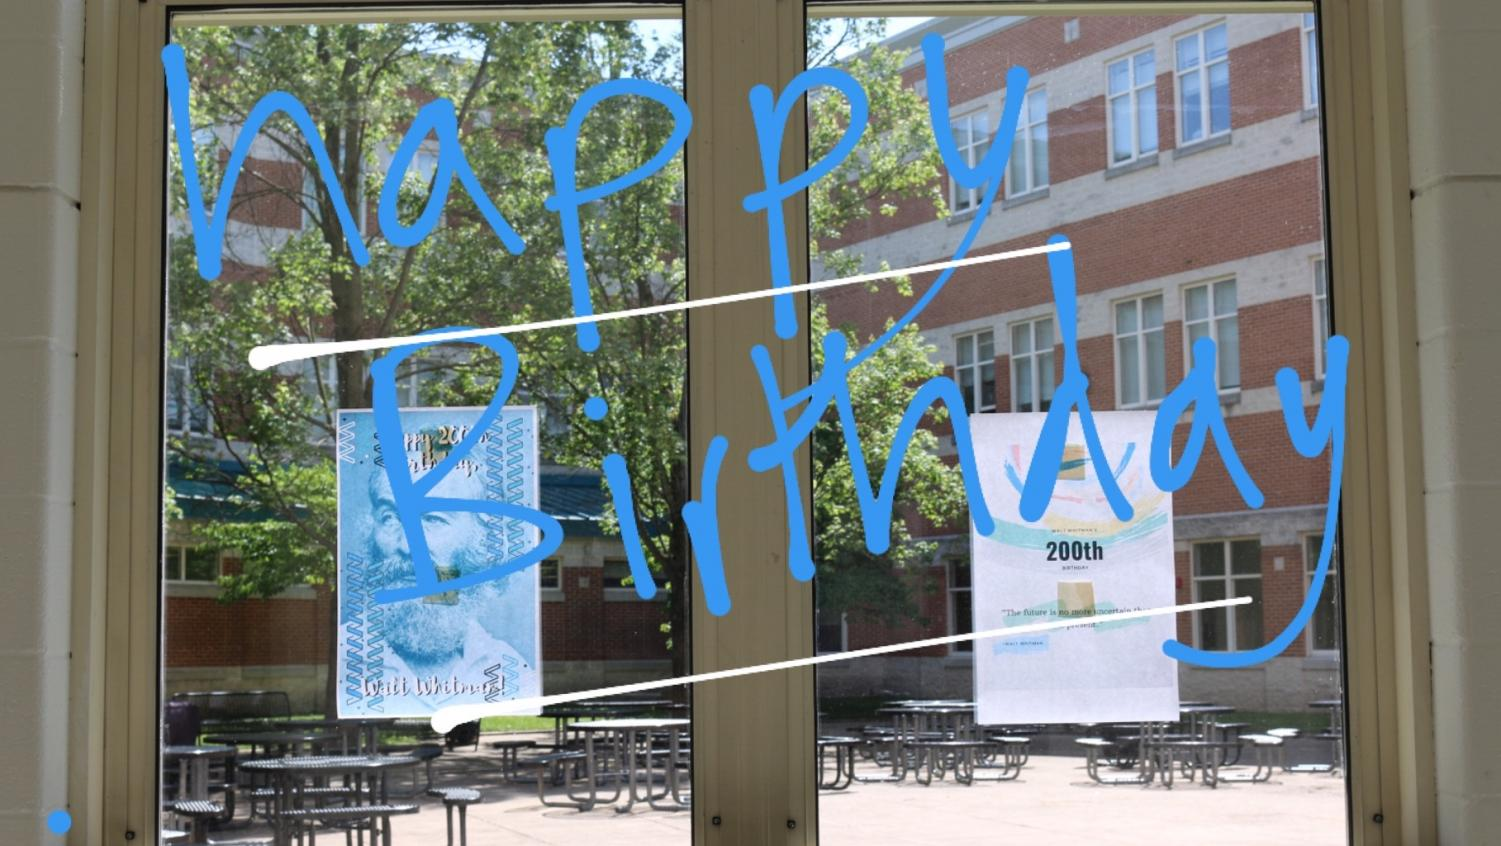 Students and staff celebrated Walt Whitman's 200th birthday today by wearing Whitman spirit gear and putting up posters. Happy birthday, Walt Whitman!